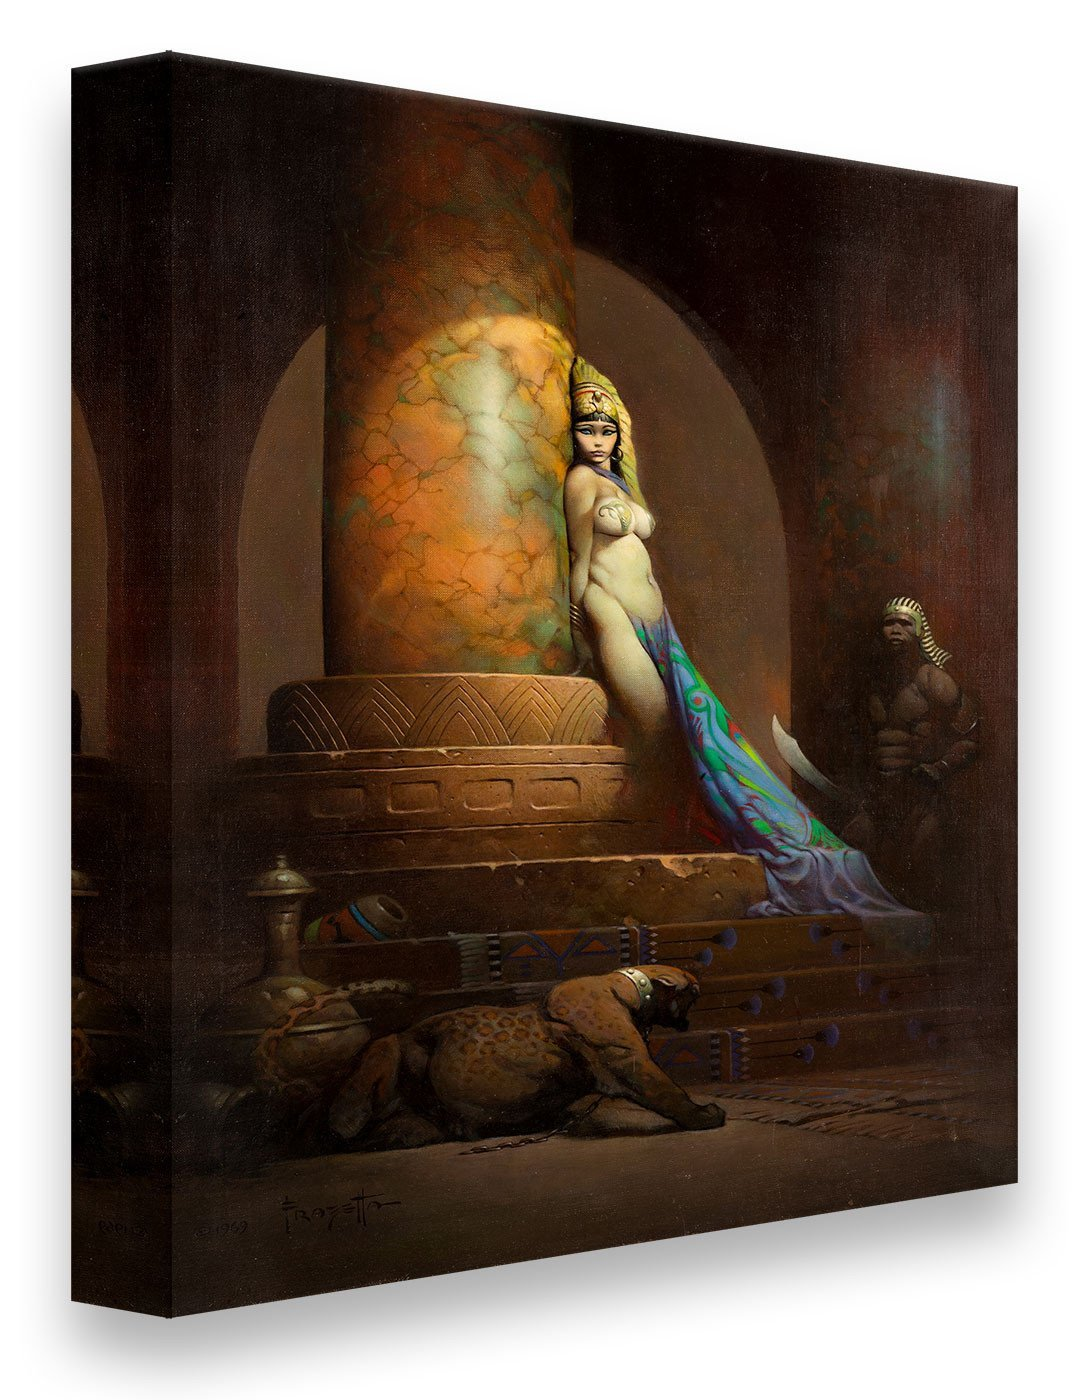 FrazettaGirls Art Print Canvas / Stretched on wooden bar / 16x20 Egyptian Queen Print